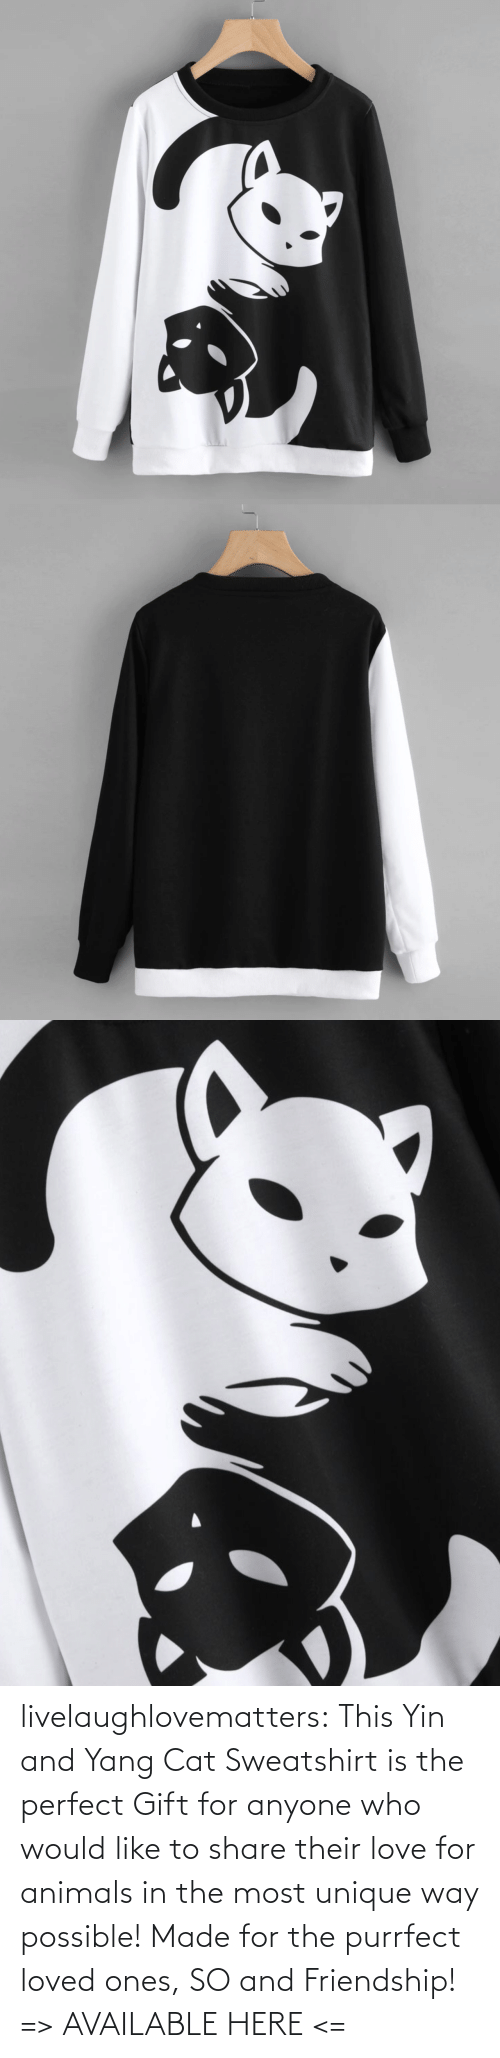 made: livelaughlovematters: This Yin and Yang Cat Sweatshirt is the perfect Gift for anyone who would like to share their love for animals in the most unique way possible! Made for the purrfect loved ones, SO and Friendship!  => AVAILABLE HERE <=